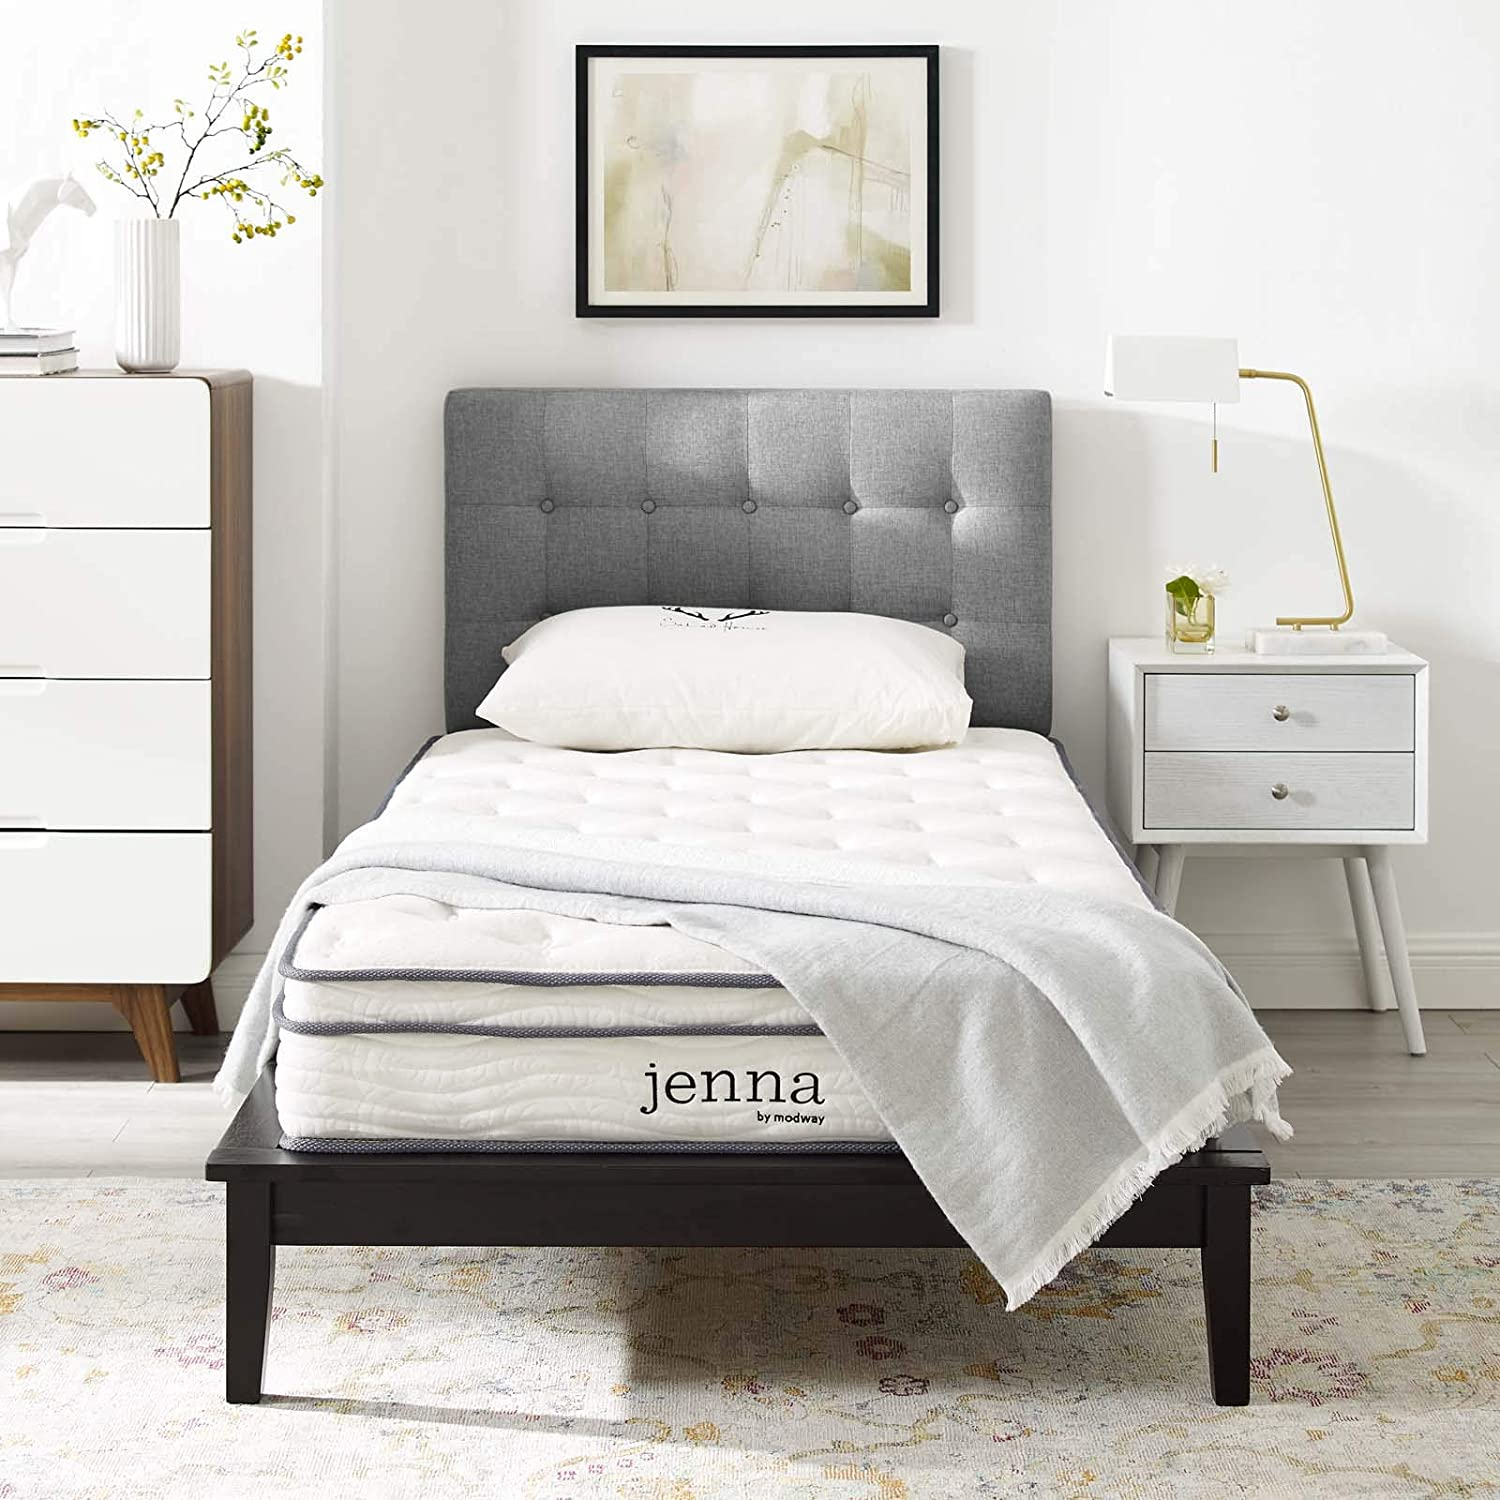 """Modway Jenna 8"""" King Innerspring Mattress - Top Quality Quilted Pillow Top - Individually Encased Pocket Coils - 10-Year Warranty"""